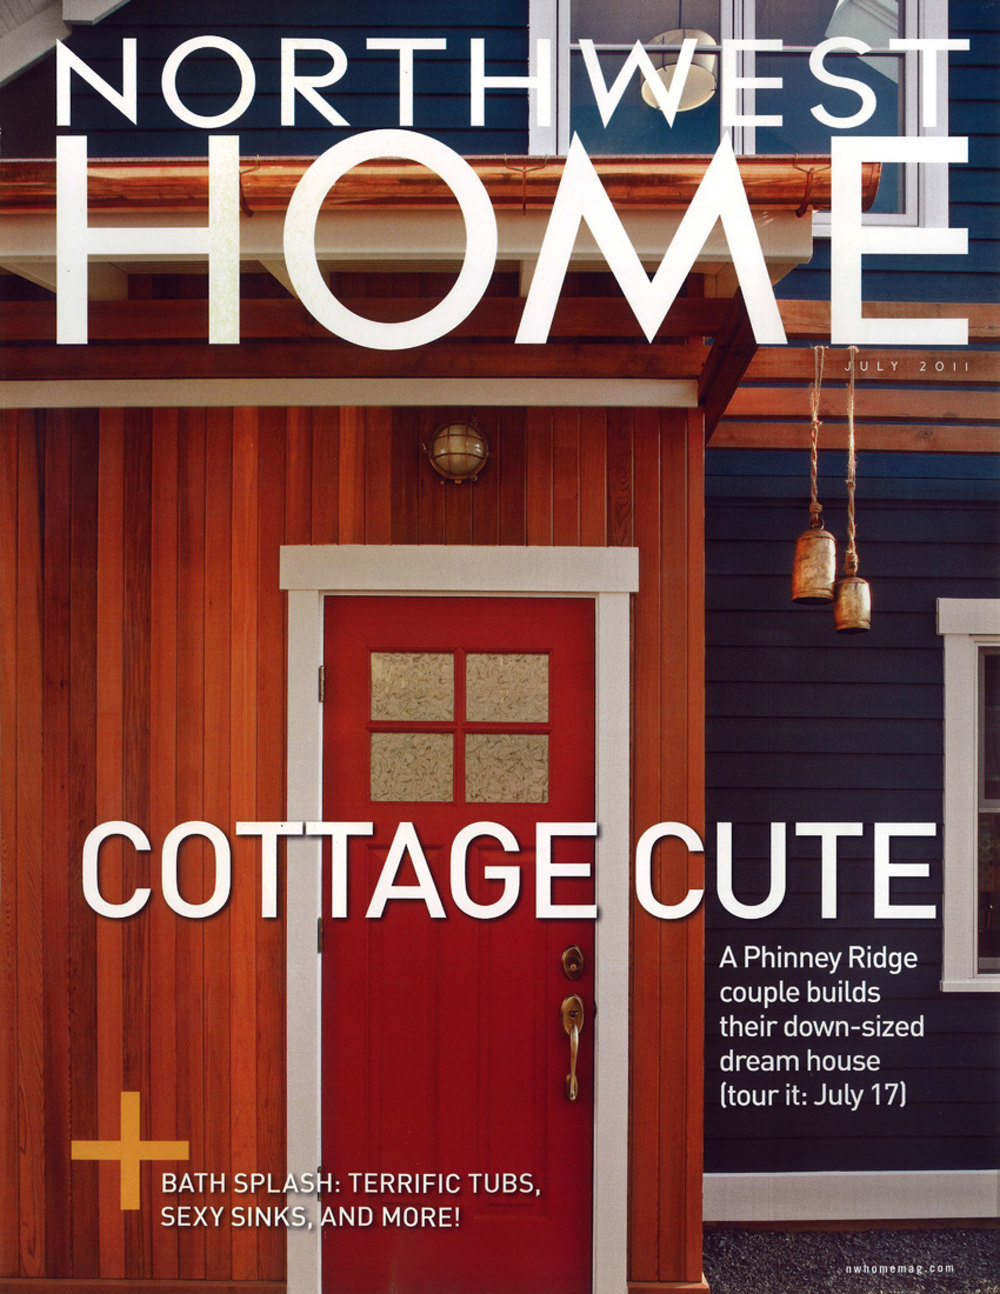 NW-Home-Cottage-Cute-Cover.jpg